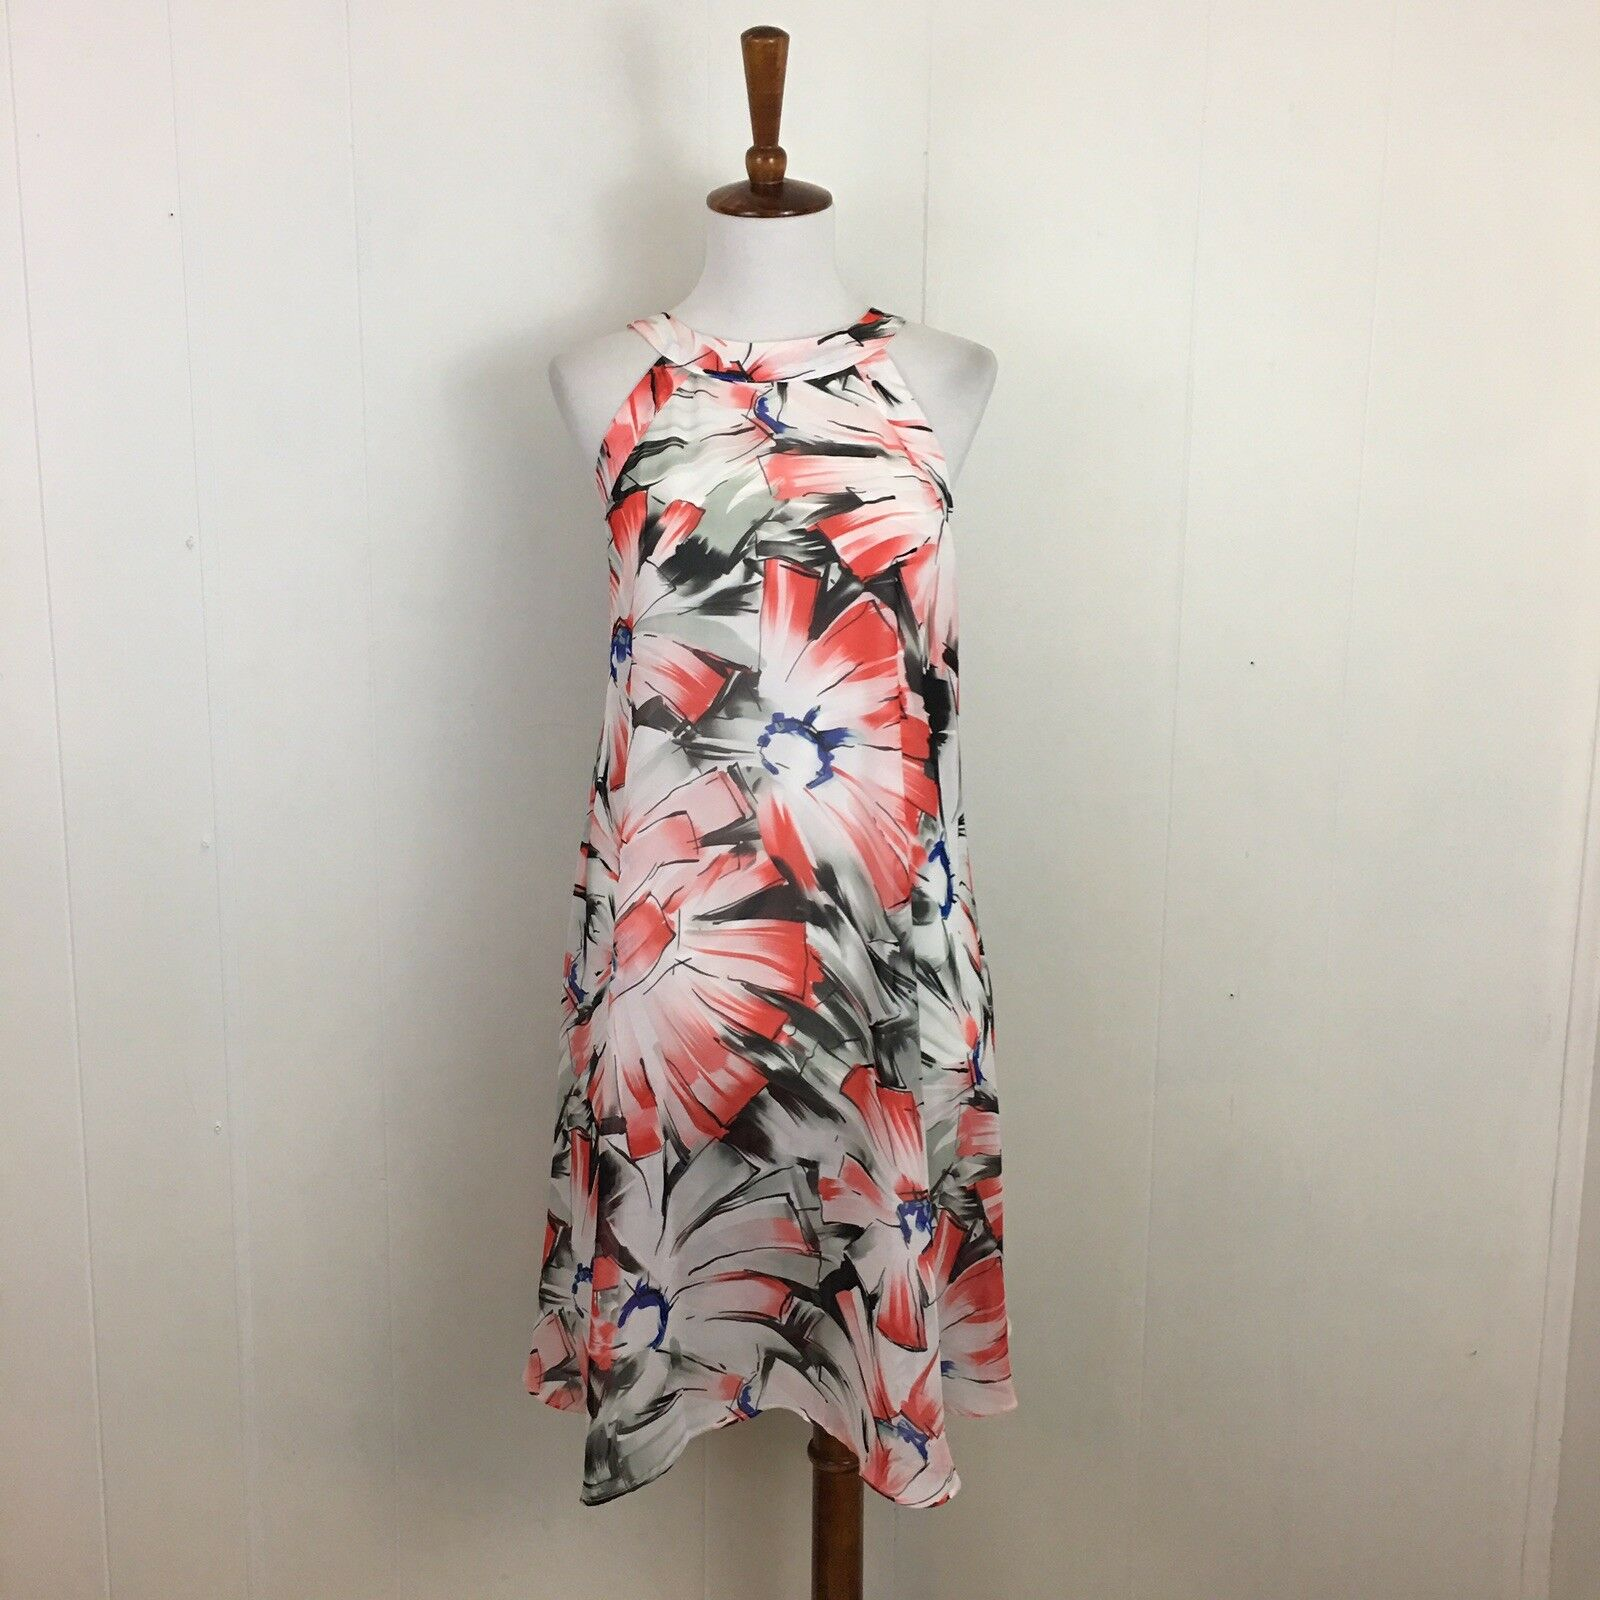 Betsey Johnson Multicolor Floral Halter Sleeveless Shift Mini Dress Size 6